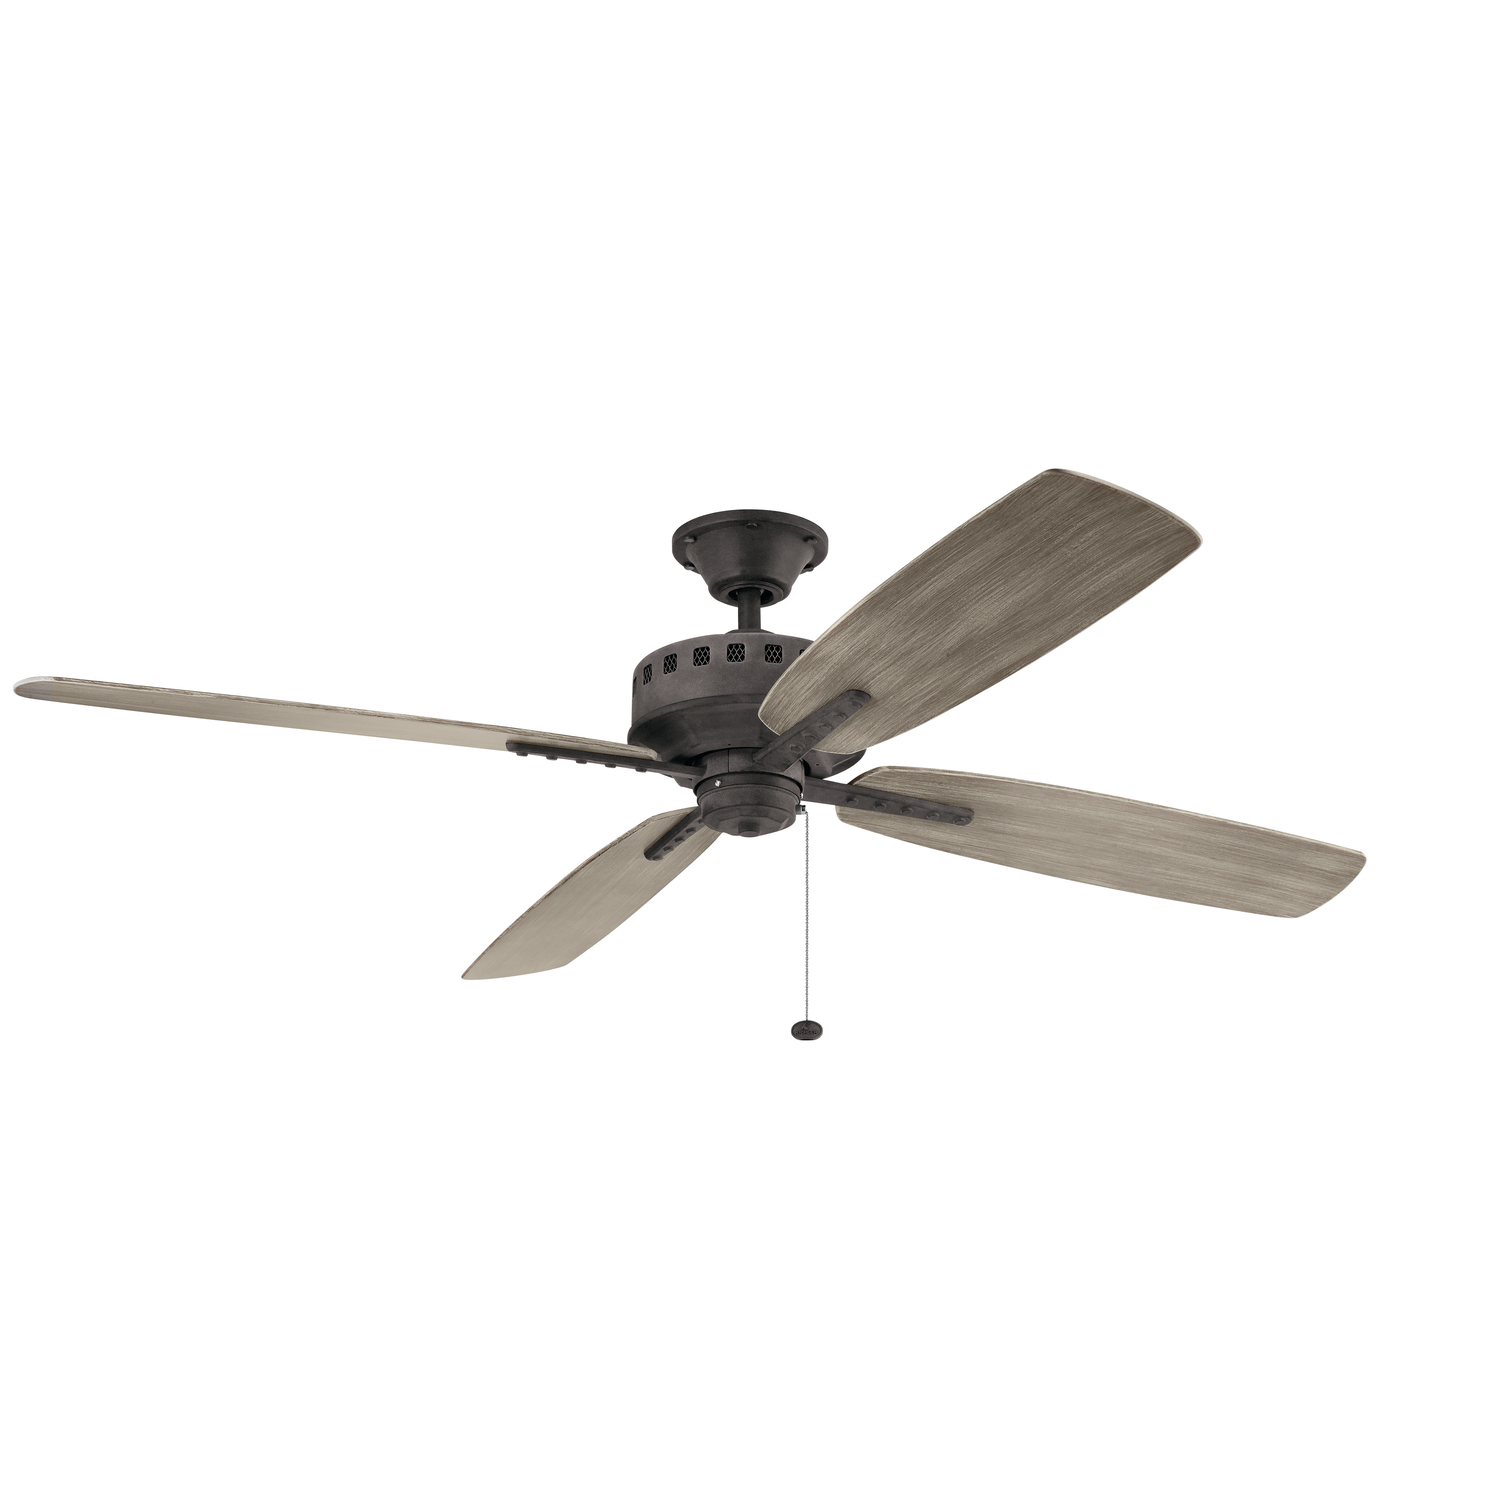 65 inchCeiling Fan from the Eads collection by Kichler 310165WZC